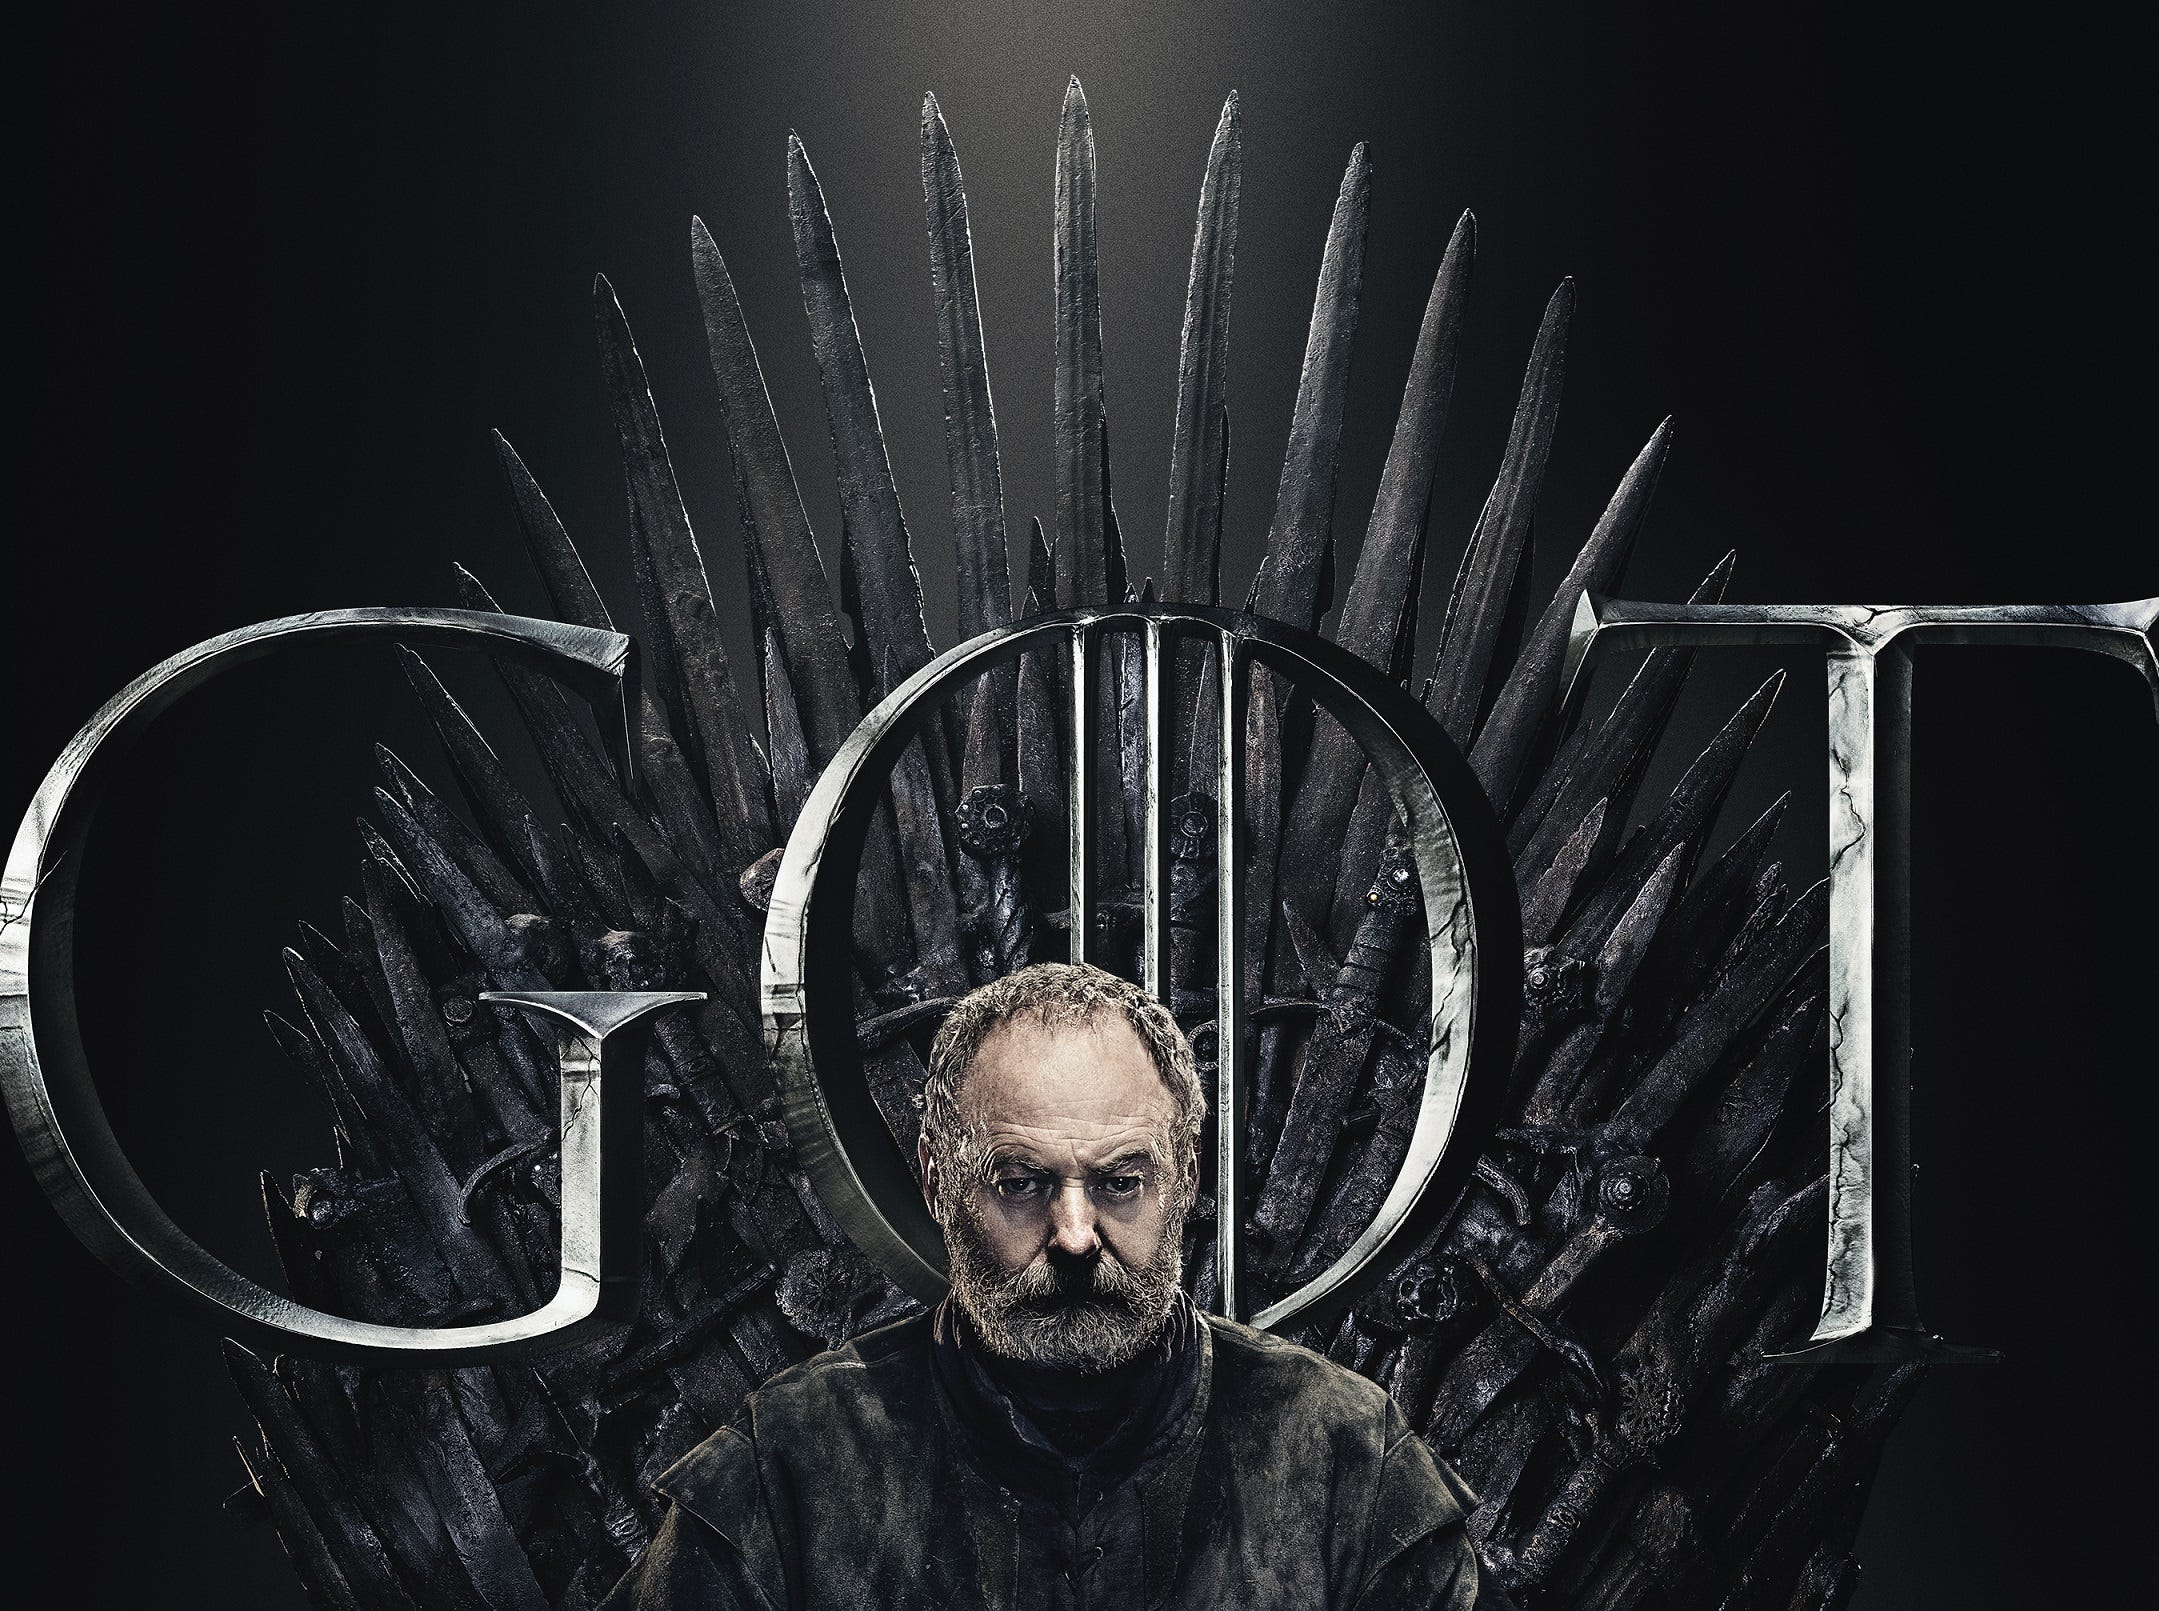 Like the father figure he is, Davos Seaworth (Liam Cunningham) mostly looks disappointed.